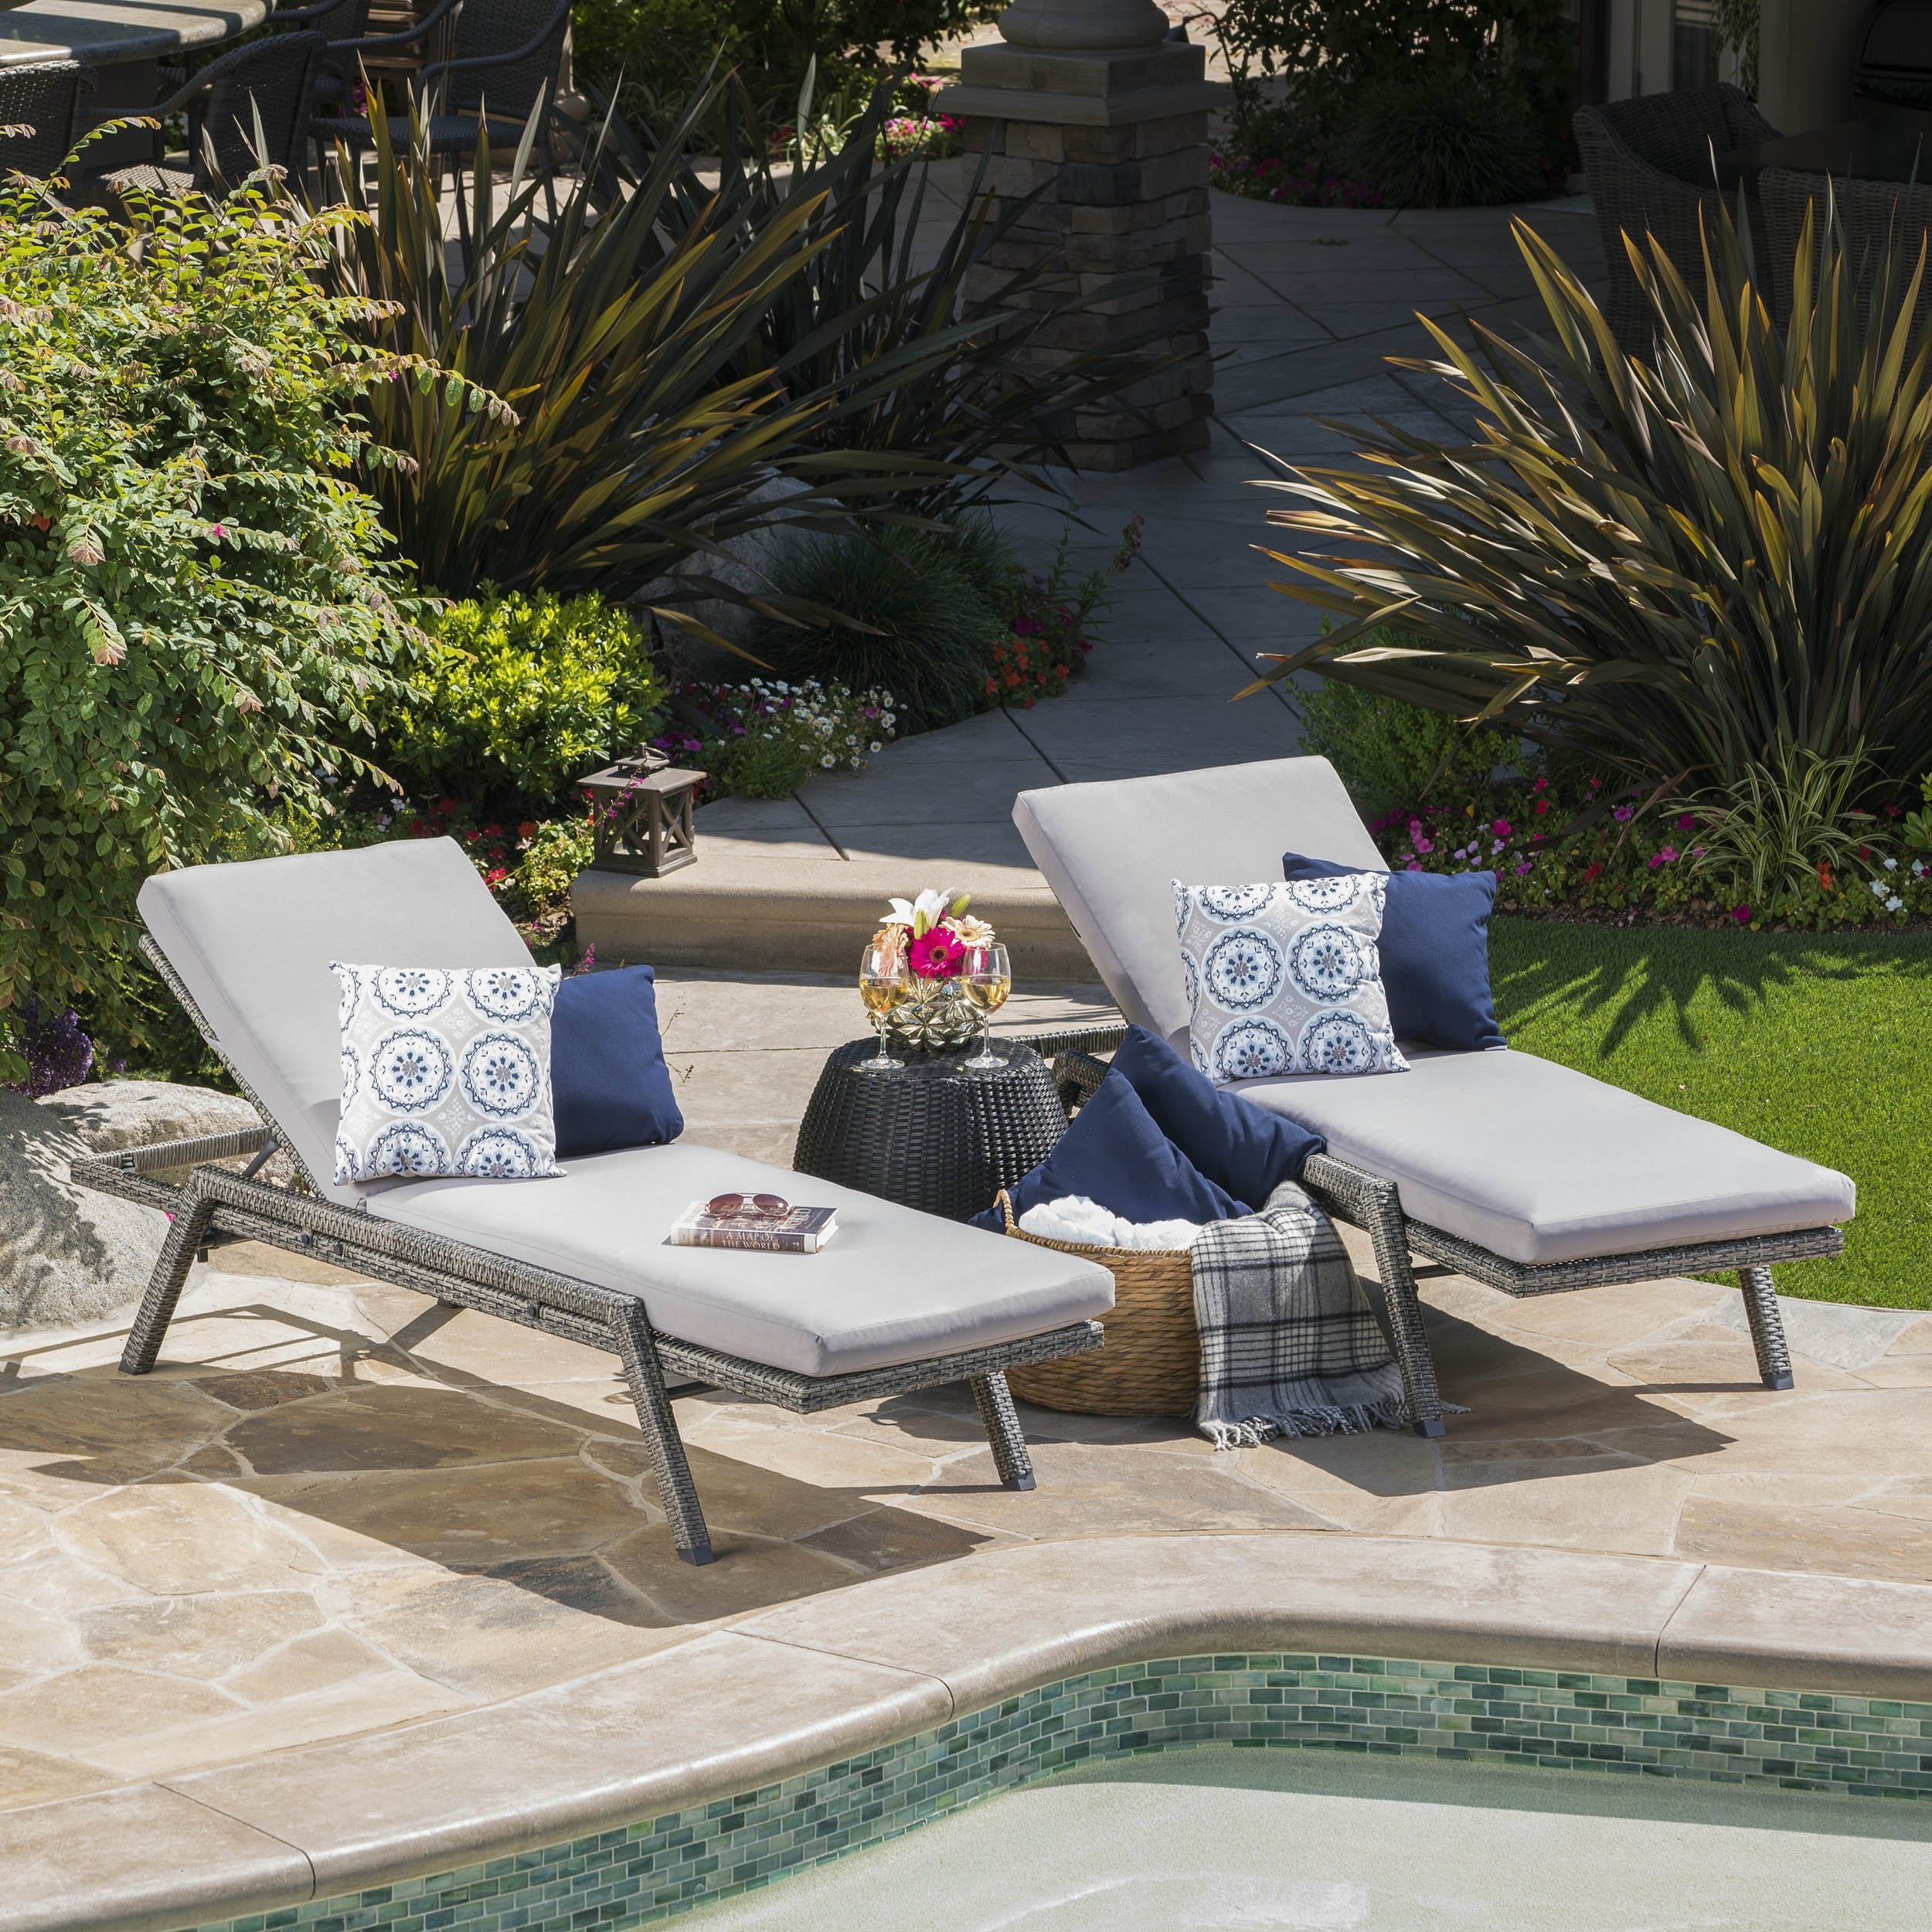 Fiora Outdoor Wicker Chaise Lounge w/ Grey Water Resistant Cushion (Set of 2)